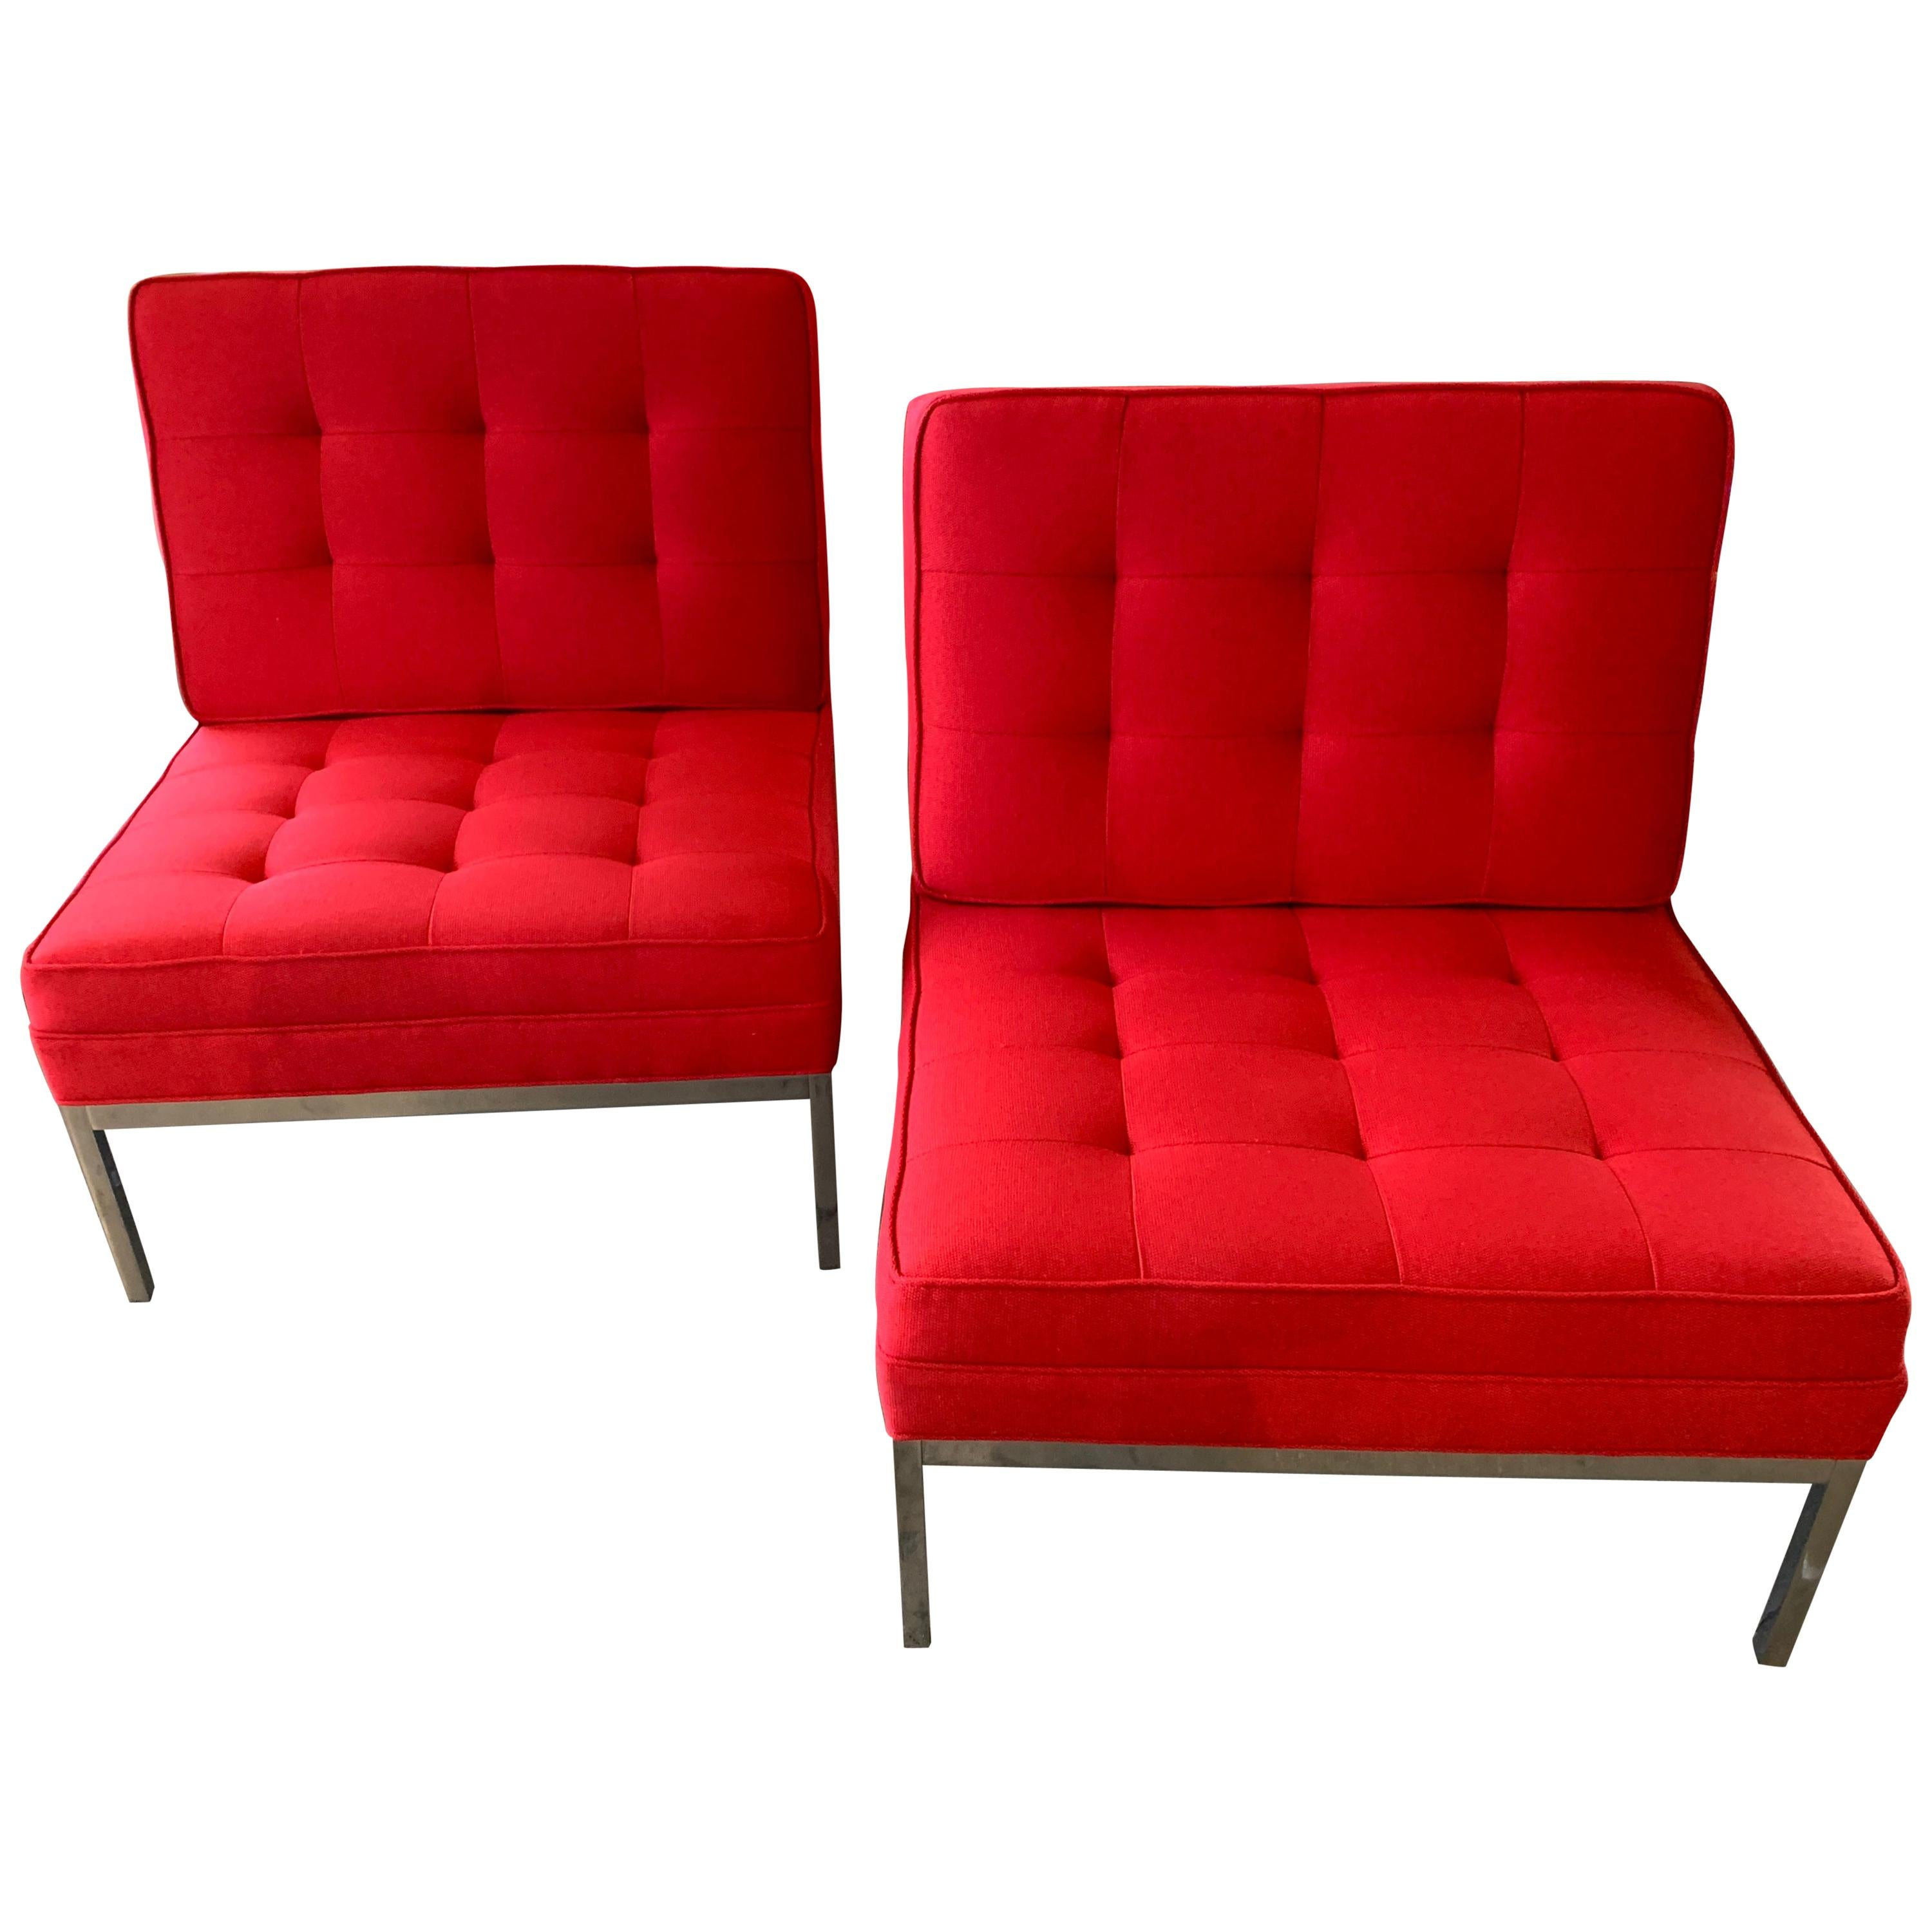 Red Florence Knoll Lounge Chairs